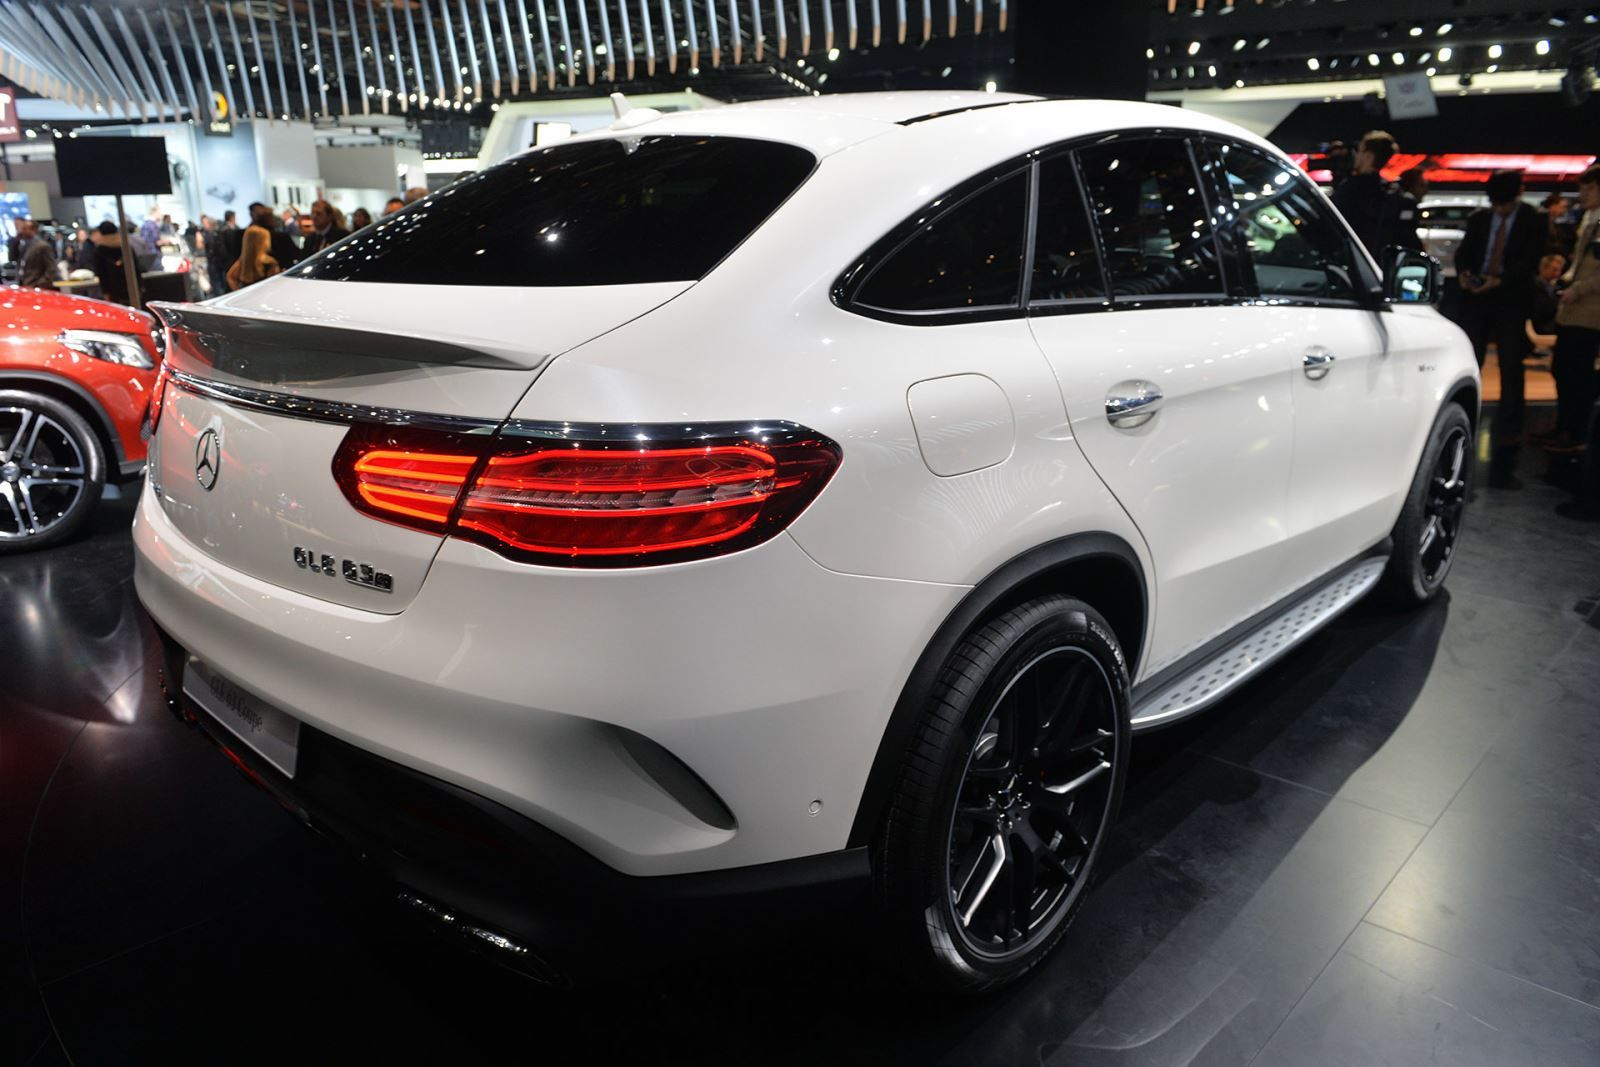 Mercedes Benz Gle Coupe 450 Amg And Gle63 At 2015 Detroit Auto Show Mercedes Benz Gle Coupe Mercedes Benz Mercedes Benz Gle